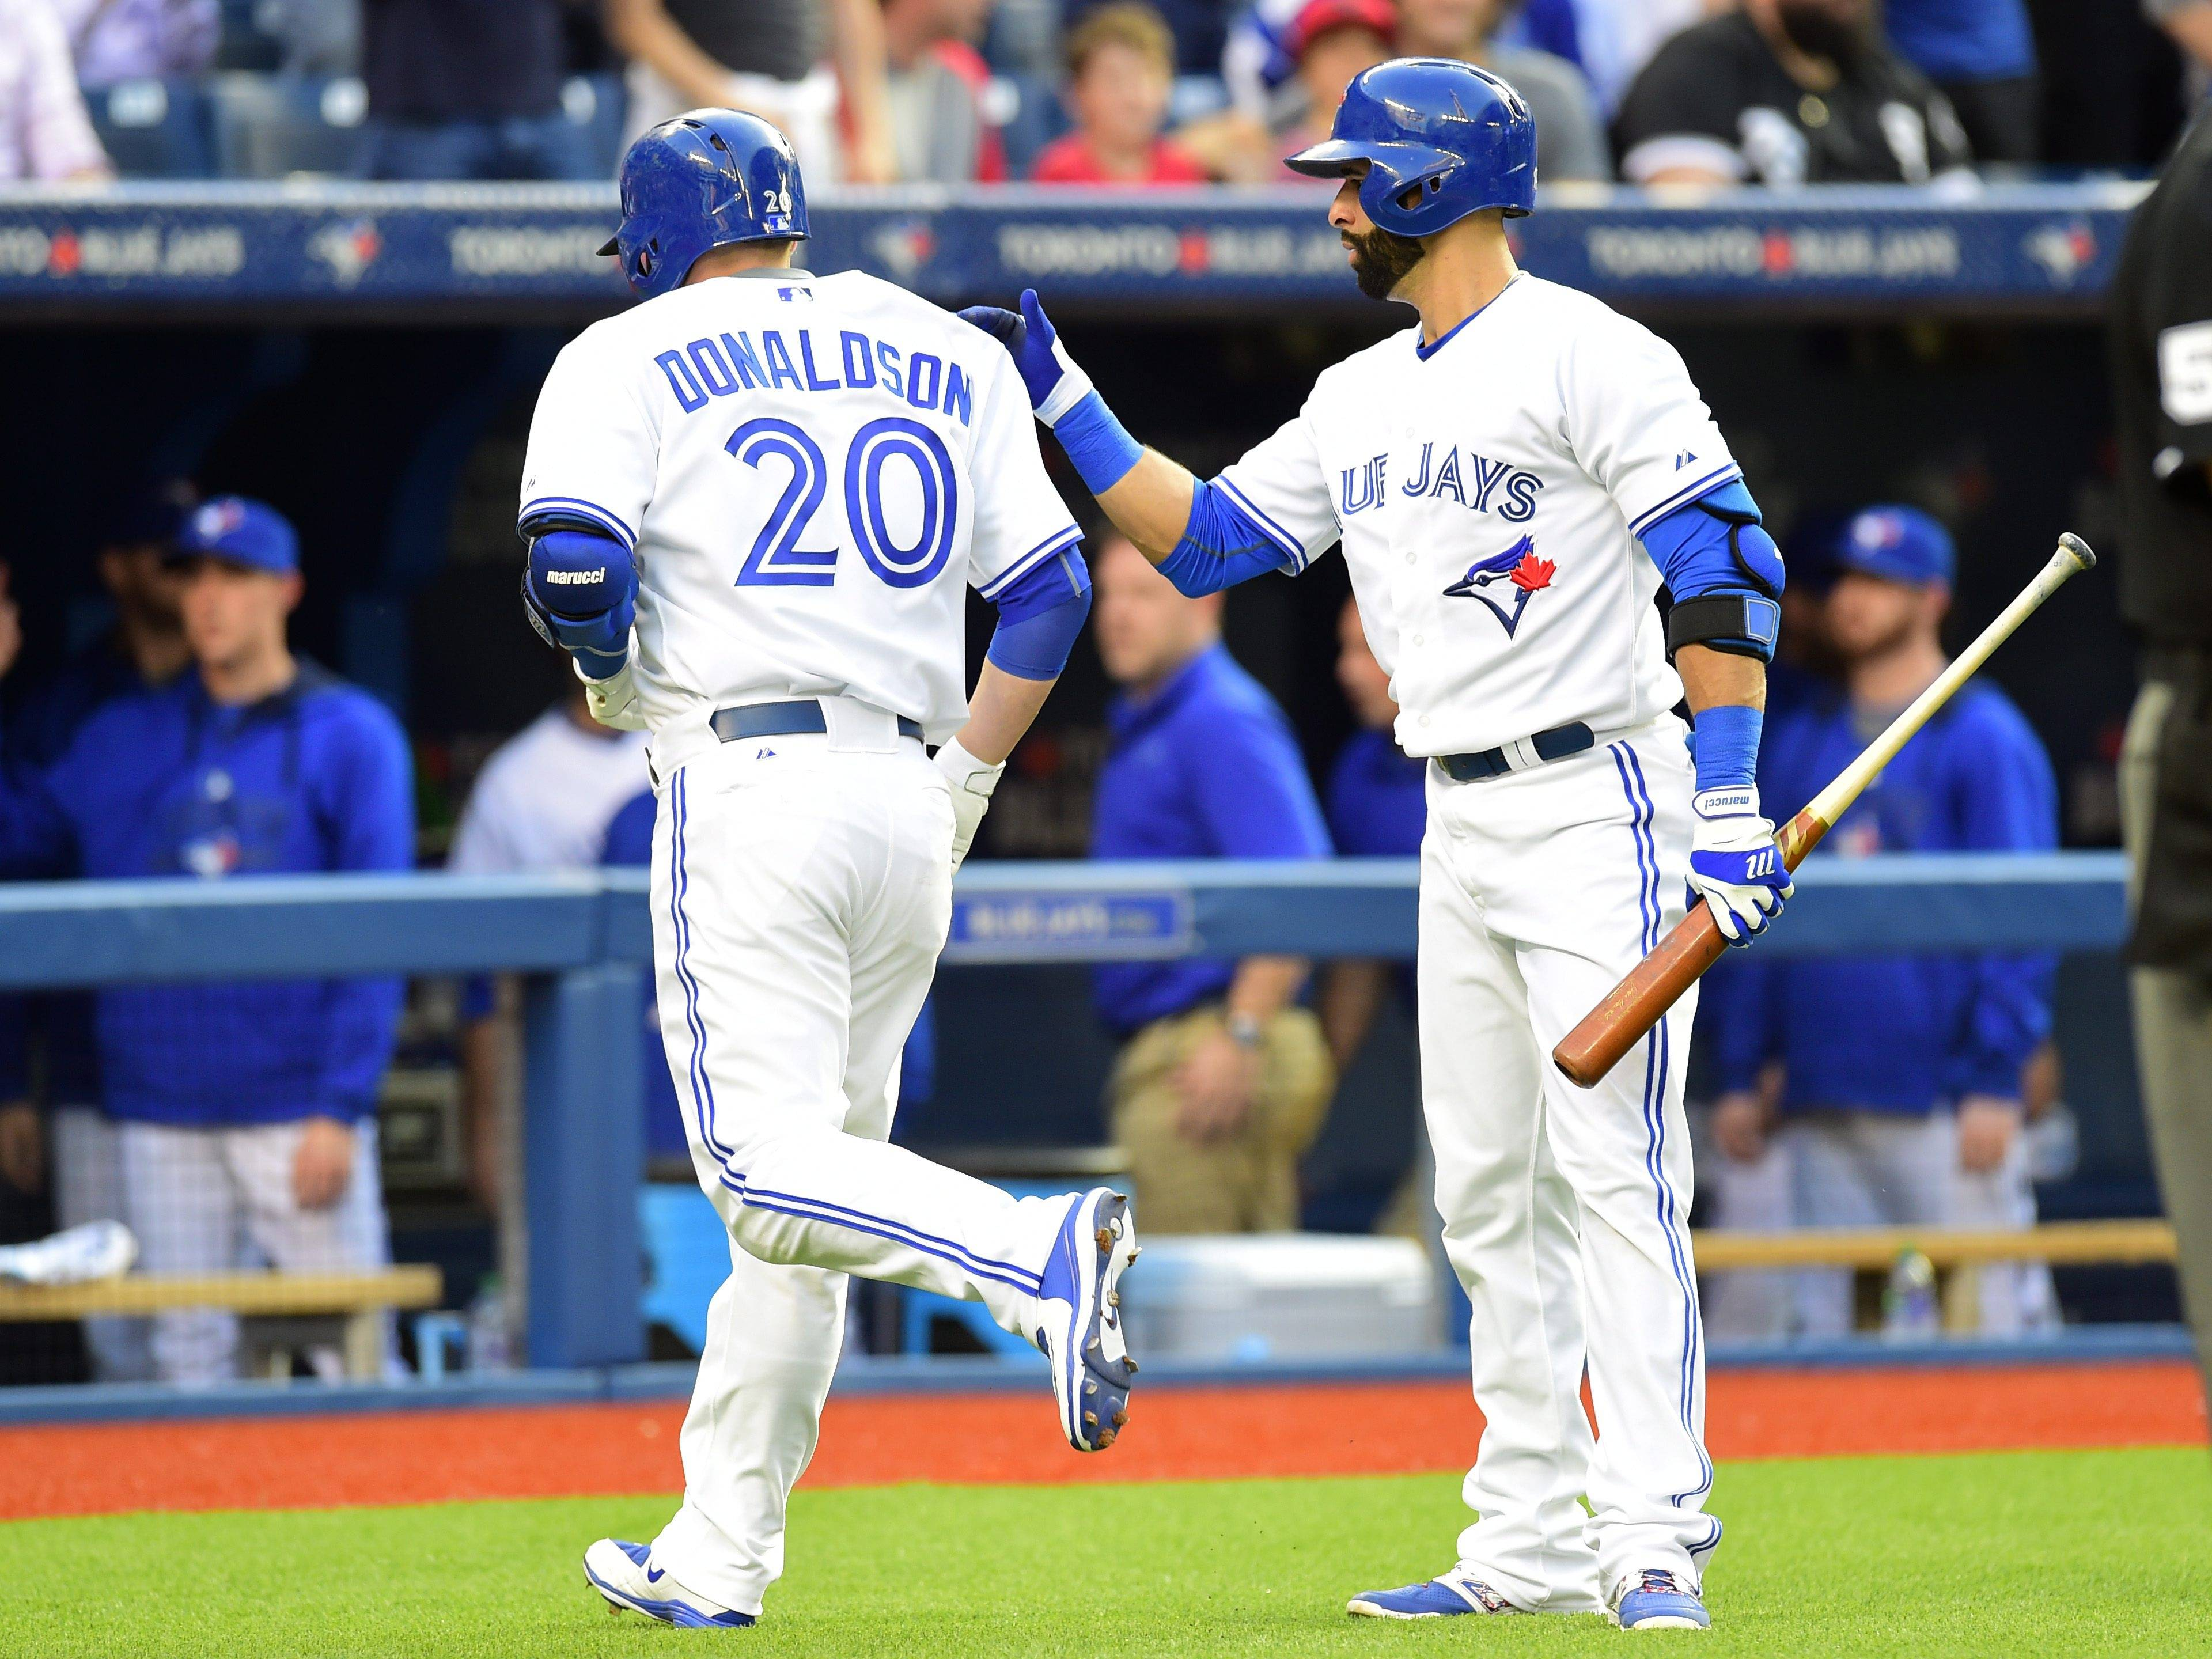 Toronto Blue Jays' Josh Donaldson, left, celebrates with teammate Jose Bautista after hitting a home run during the first inning of American League baseball action against the Chicago White Sox in Toronto on Tuesday, May 26, 2015.